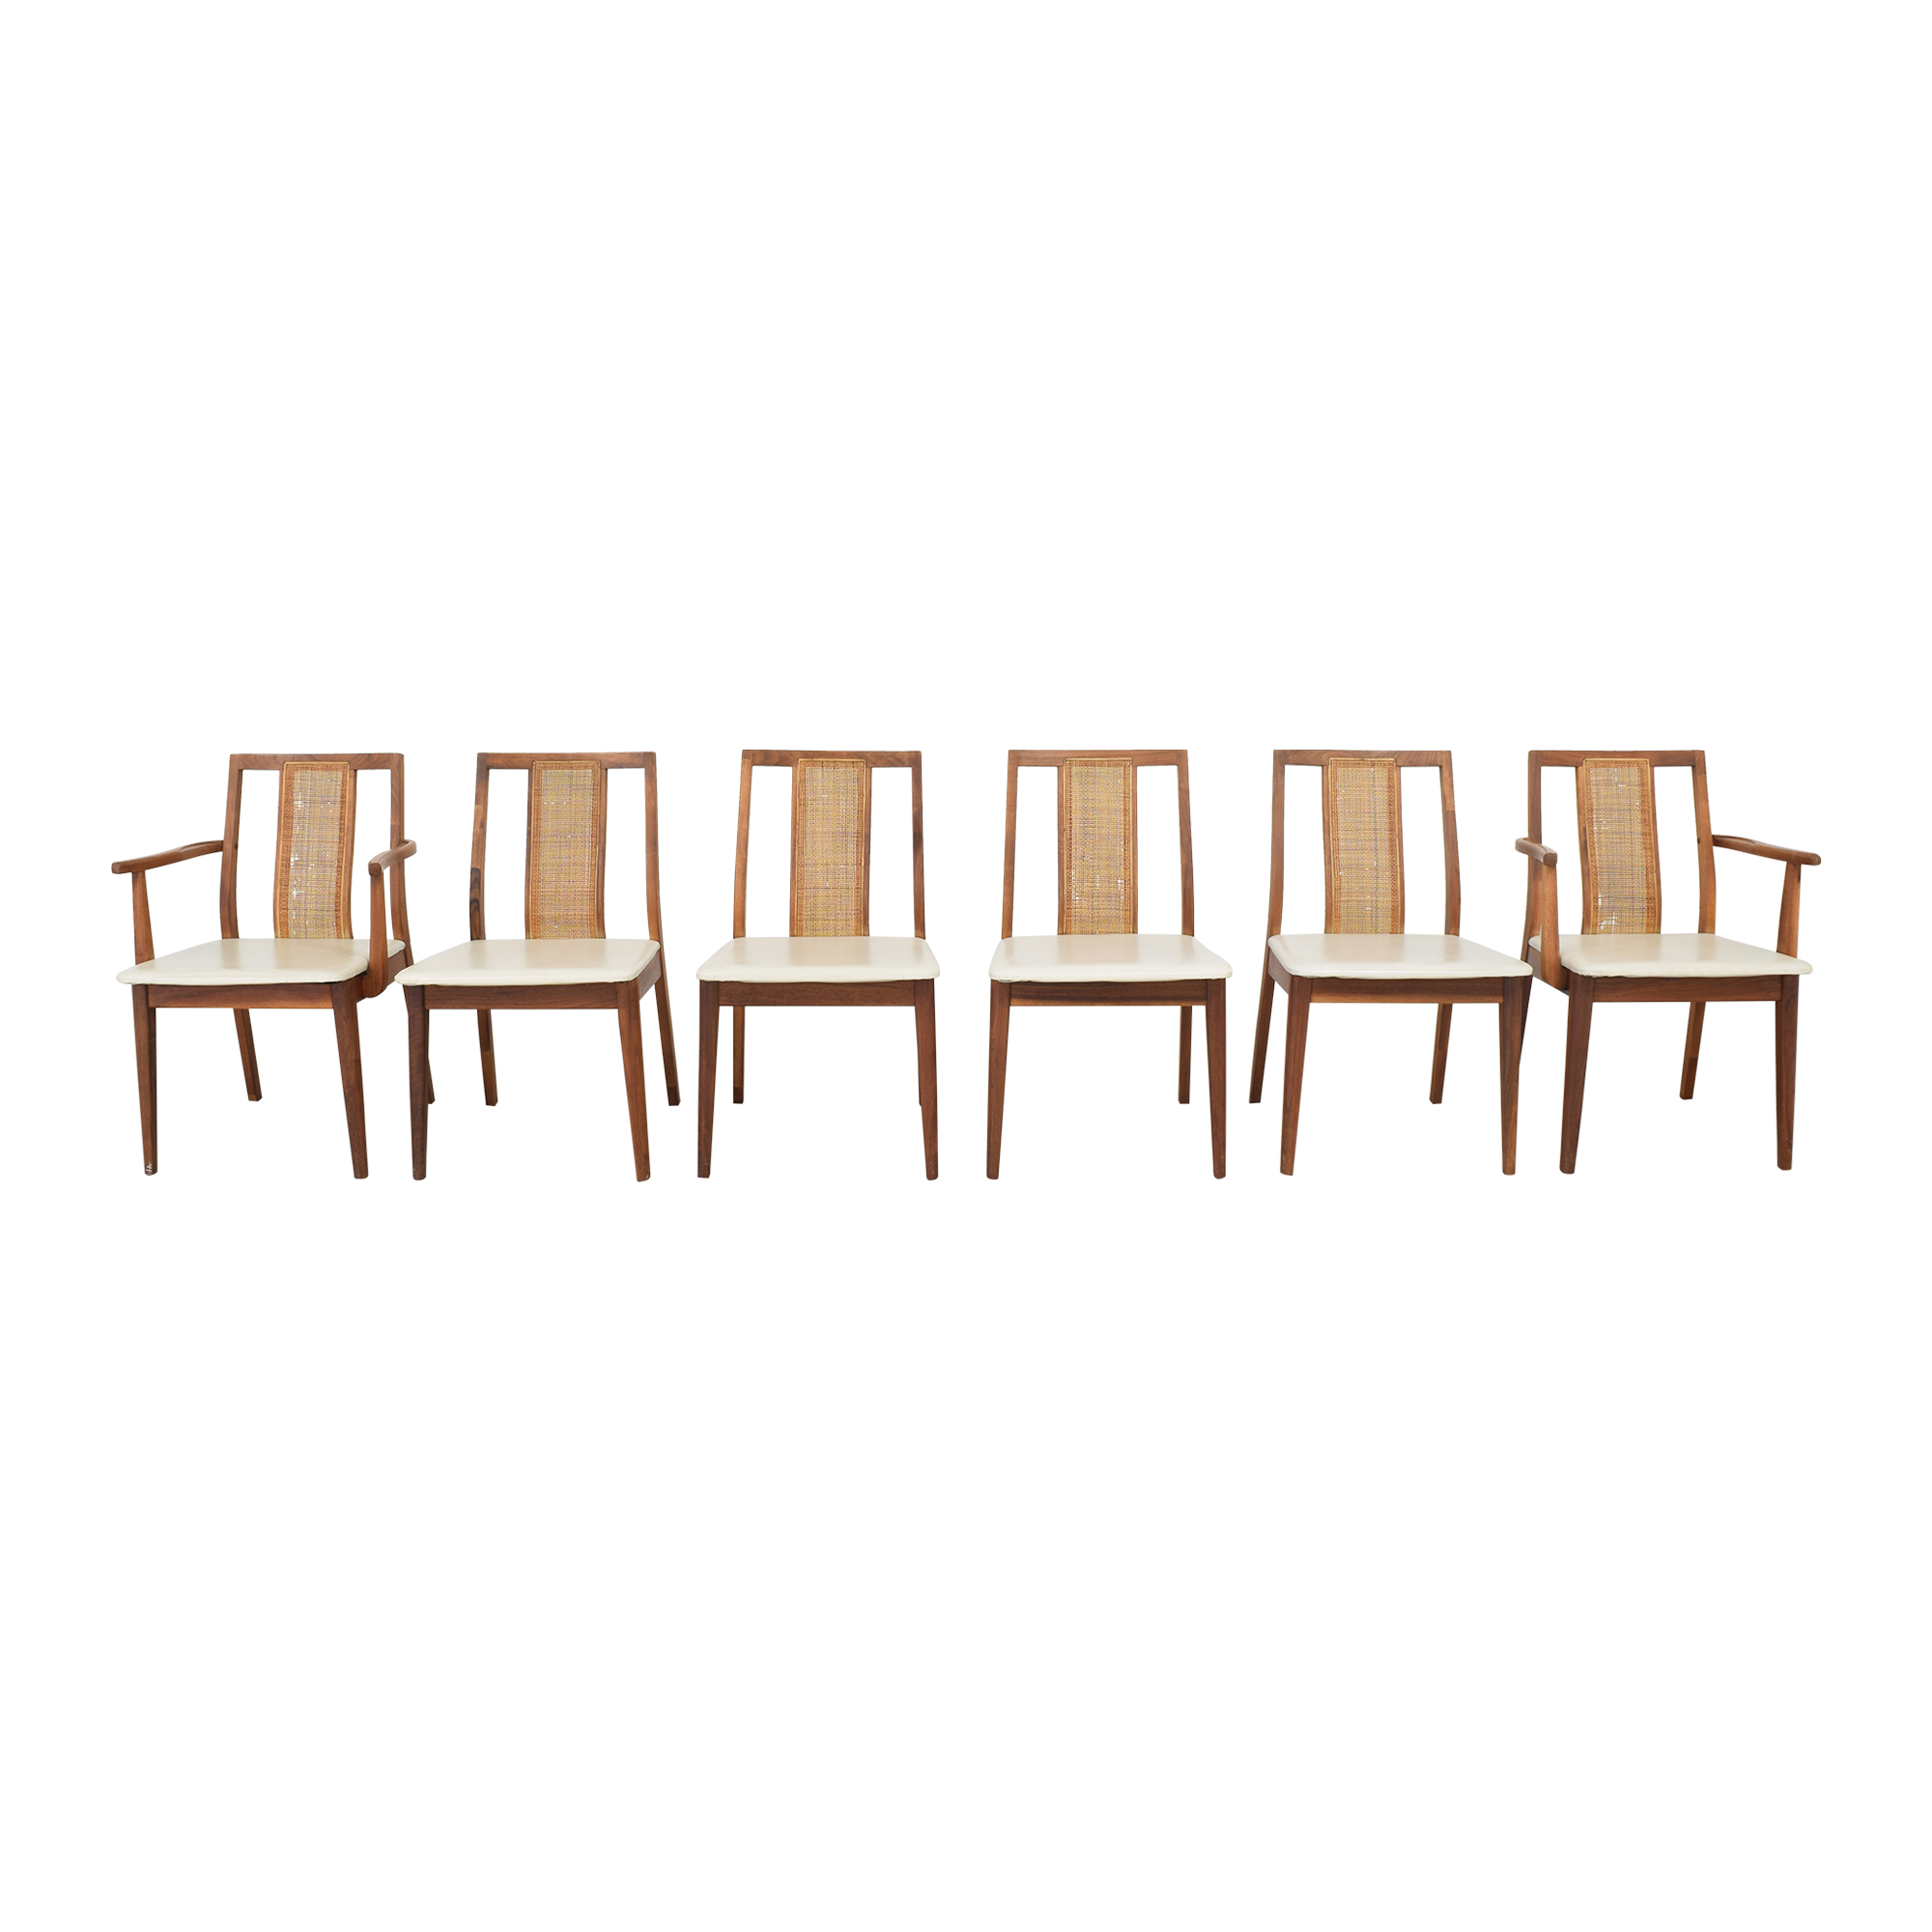 Danish-Style Dining Chairs off white and brown